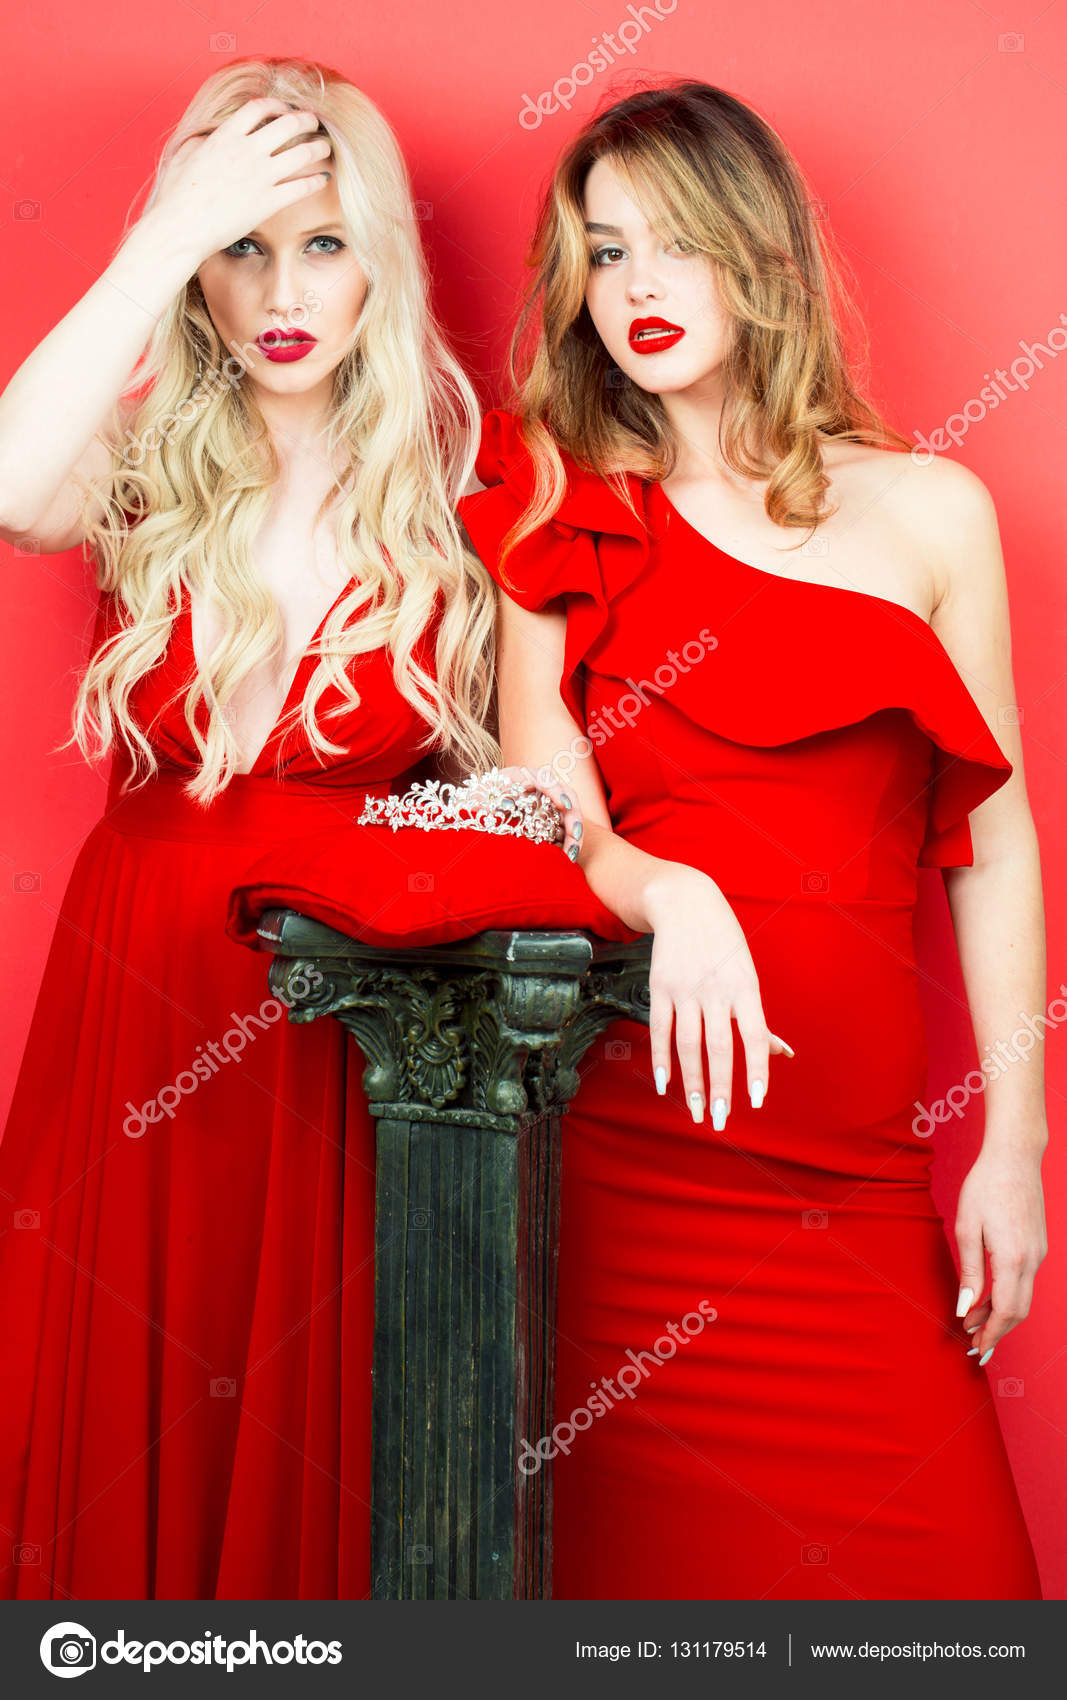 Rotes kleid roter lippenstift